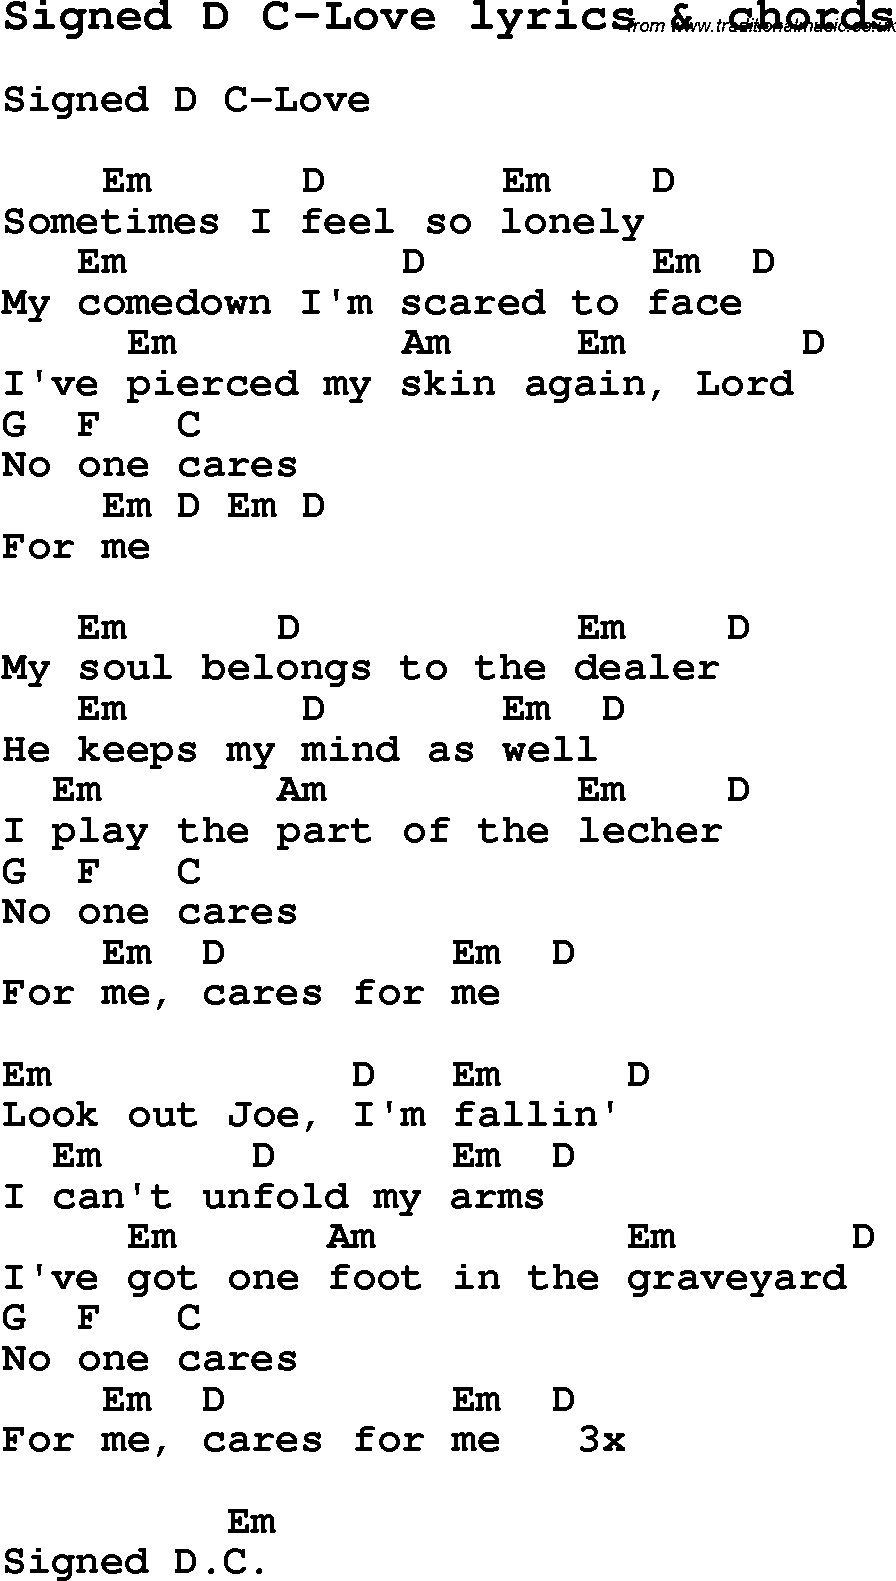 Love Song Lyrics for:Signed D C-Love with chords.